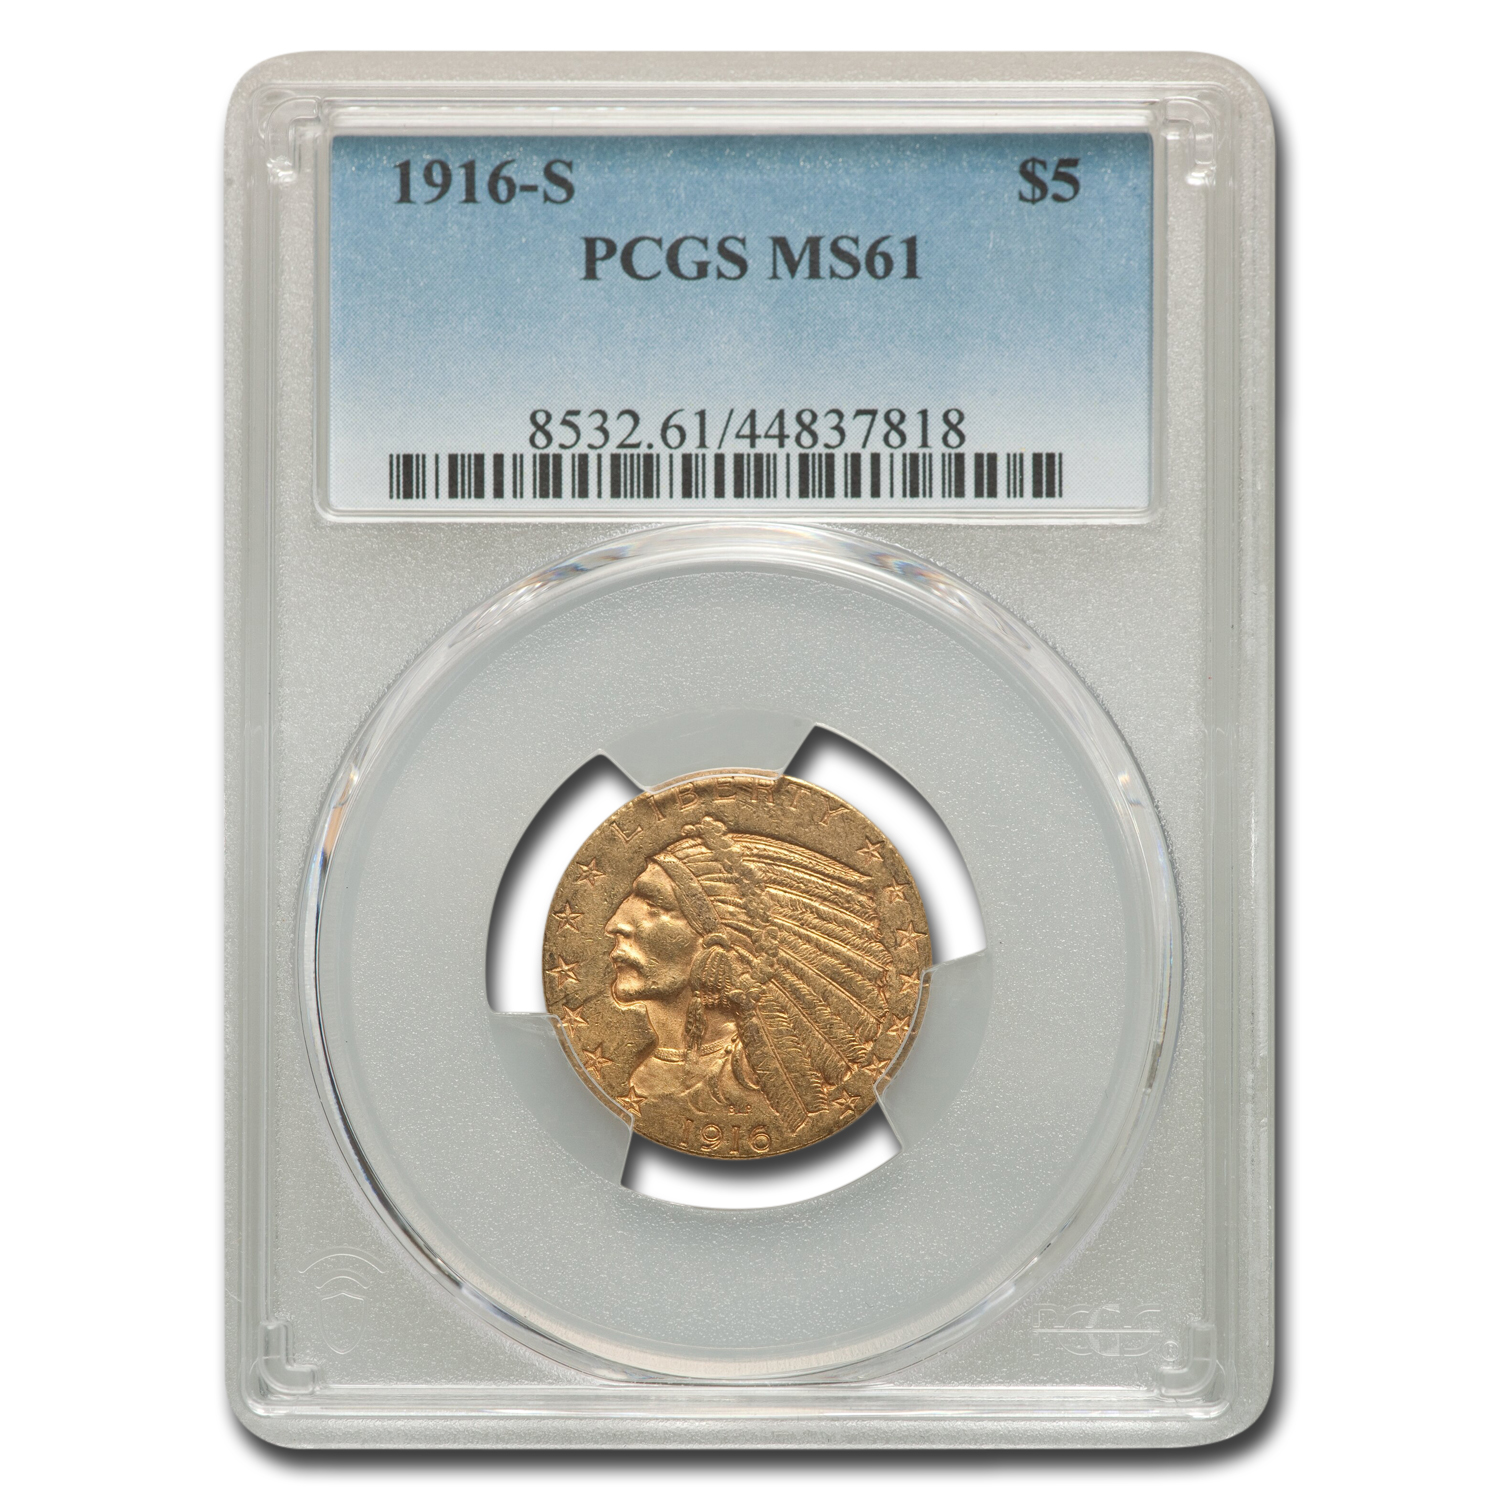 1916-S $5 Indian Gold Half Eagle MS-61 PCGS